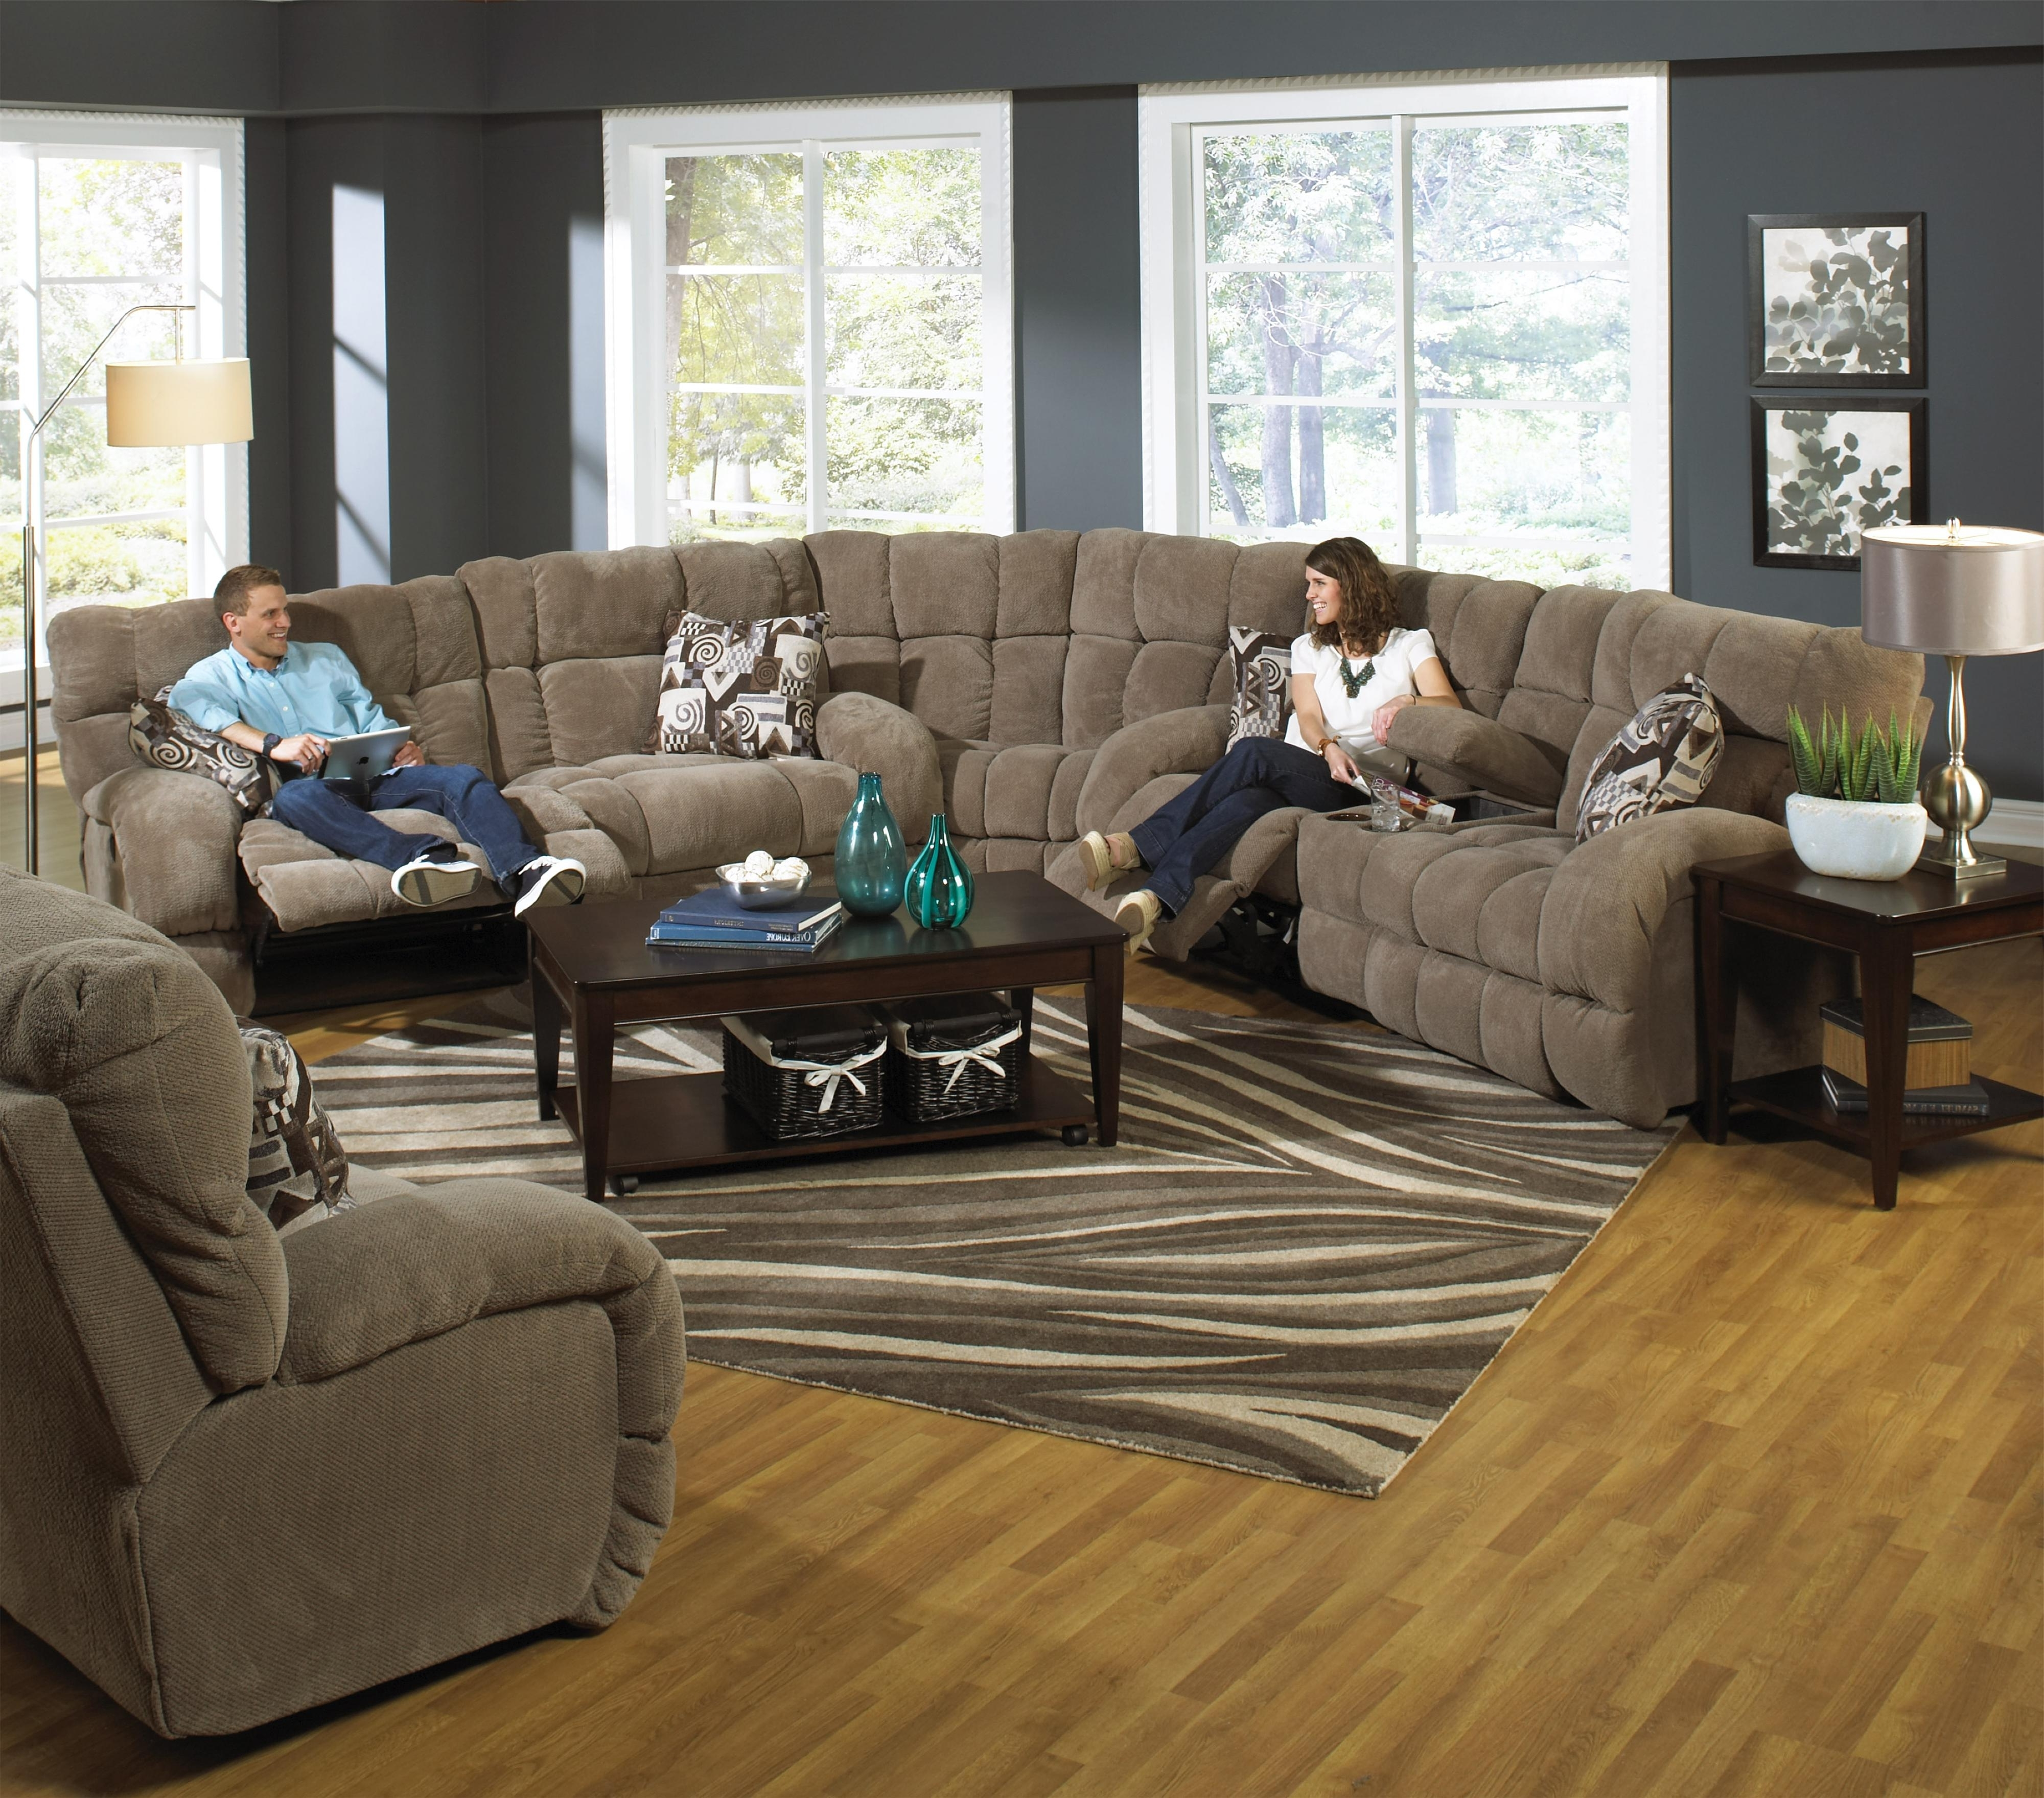 2018 Sectional Sofas With Power Recliners With Regard To Catnapper Siesta Power Reclining Sectional Sofa With Cup Holders (View 2 of 15)